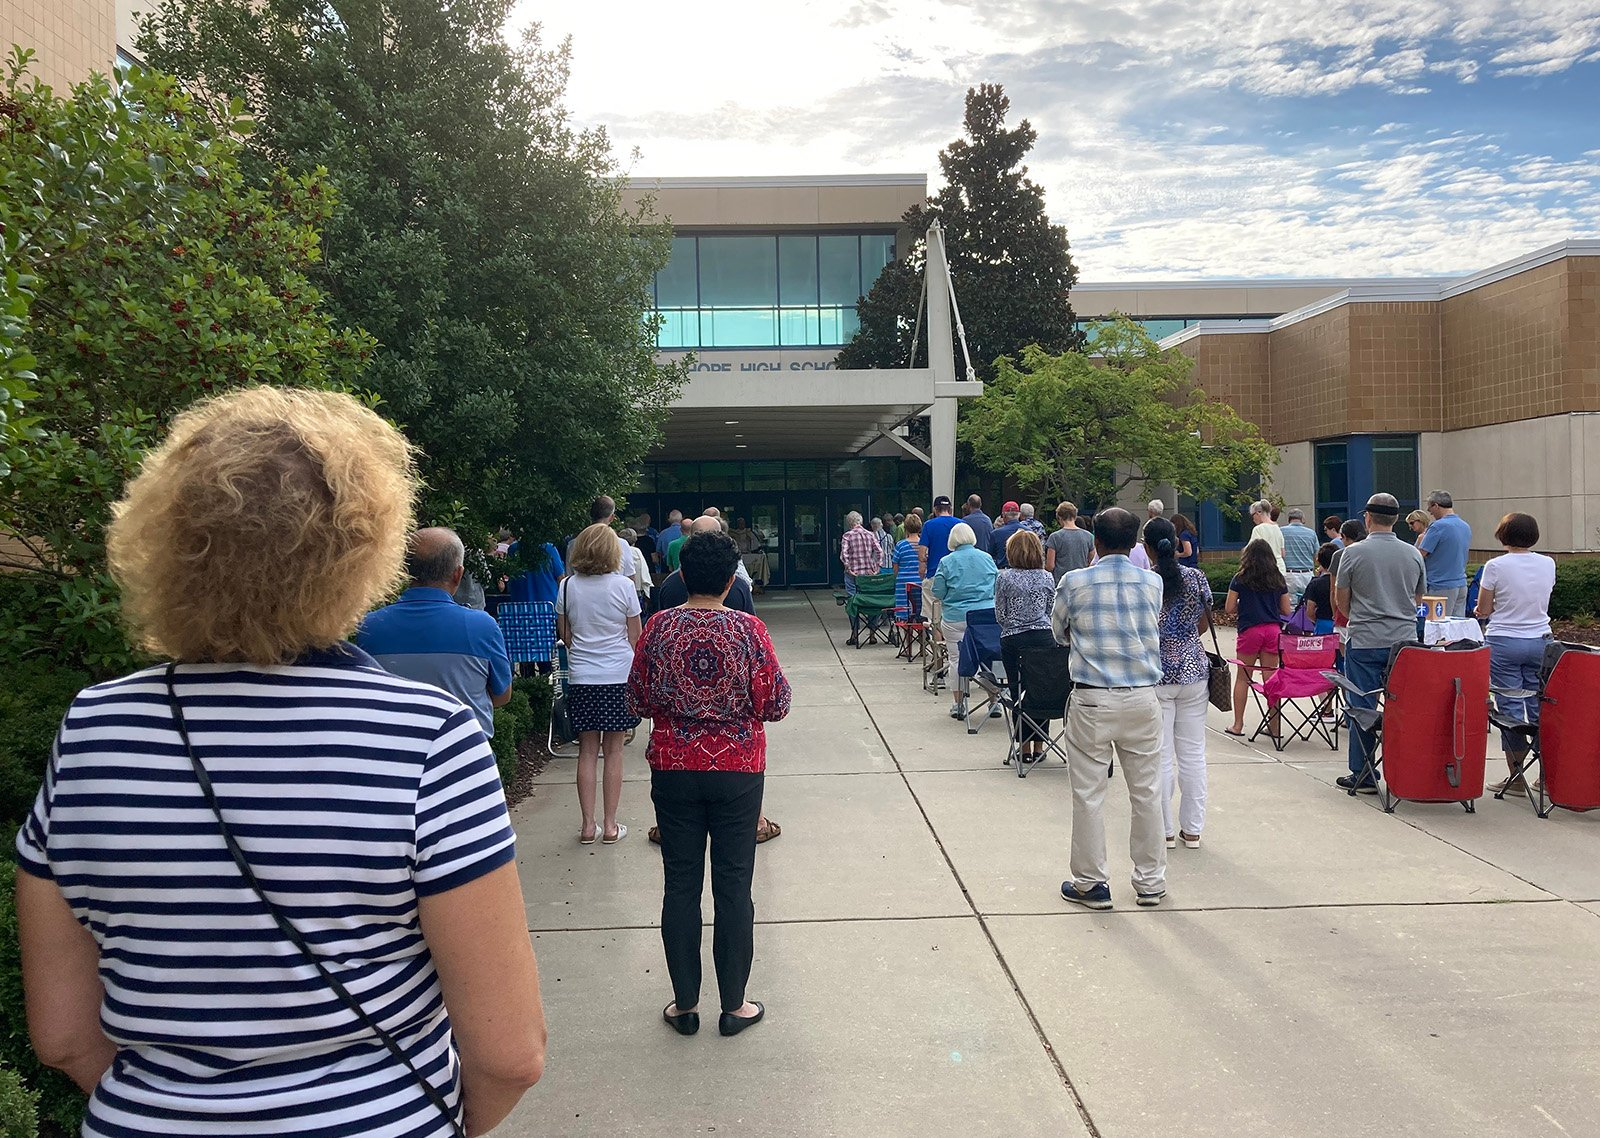 Mother Teresa Catholic Church congregants bring their own chairs for Mass outside Green Hope High School in Cary, North Carolina, early Sunday, Aug. 15, 2021. RNS photo by Yonat Shimron